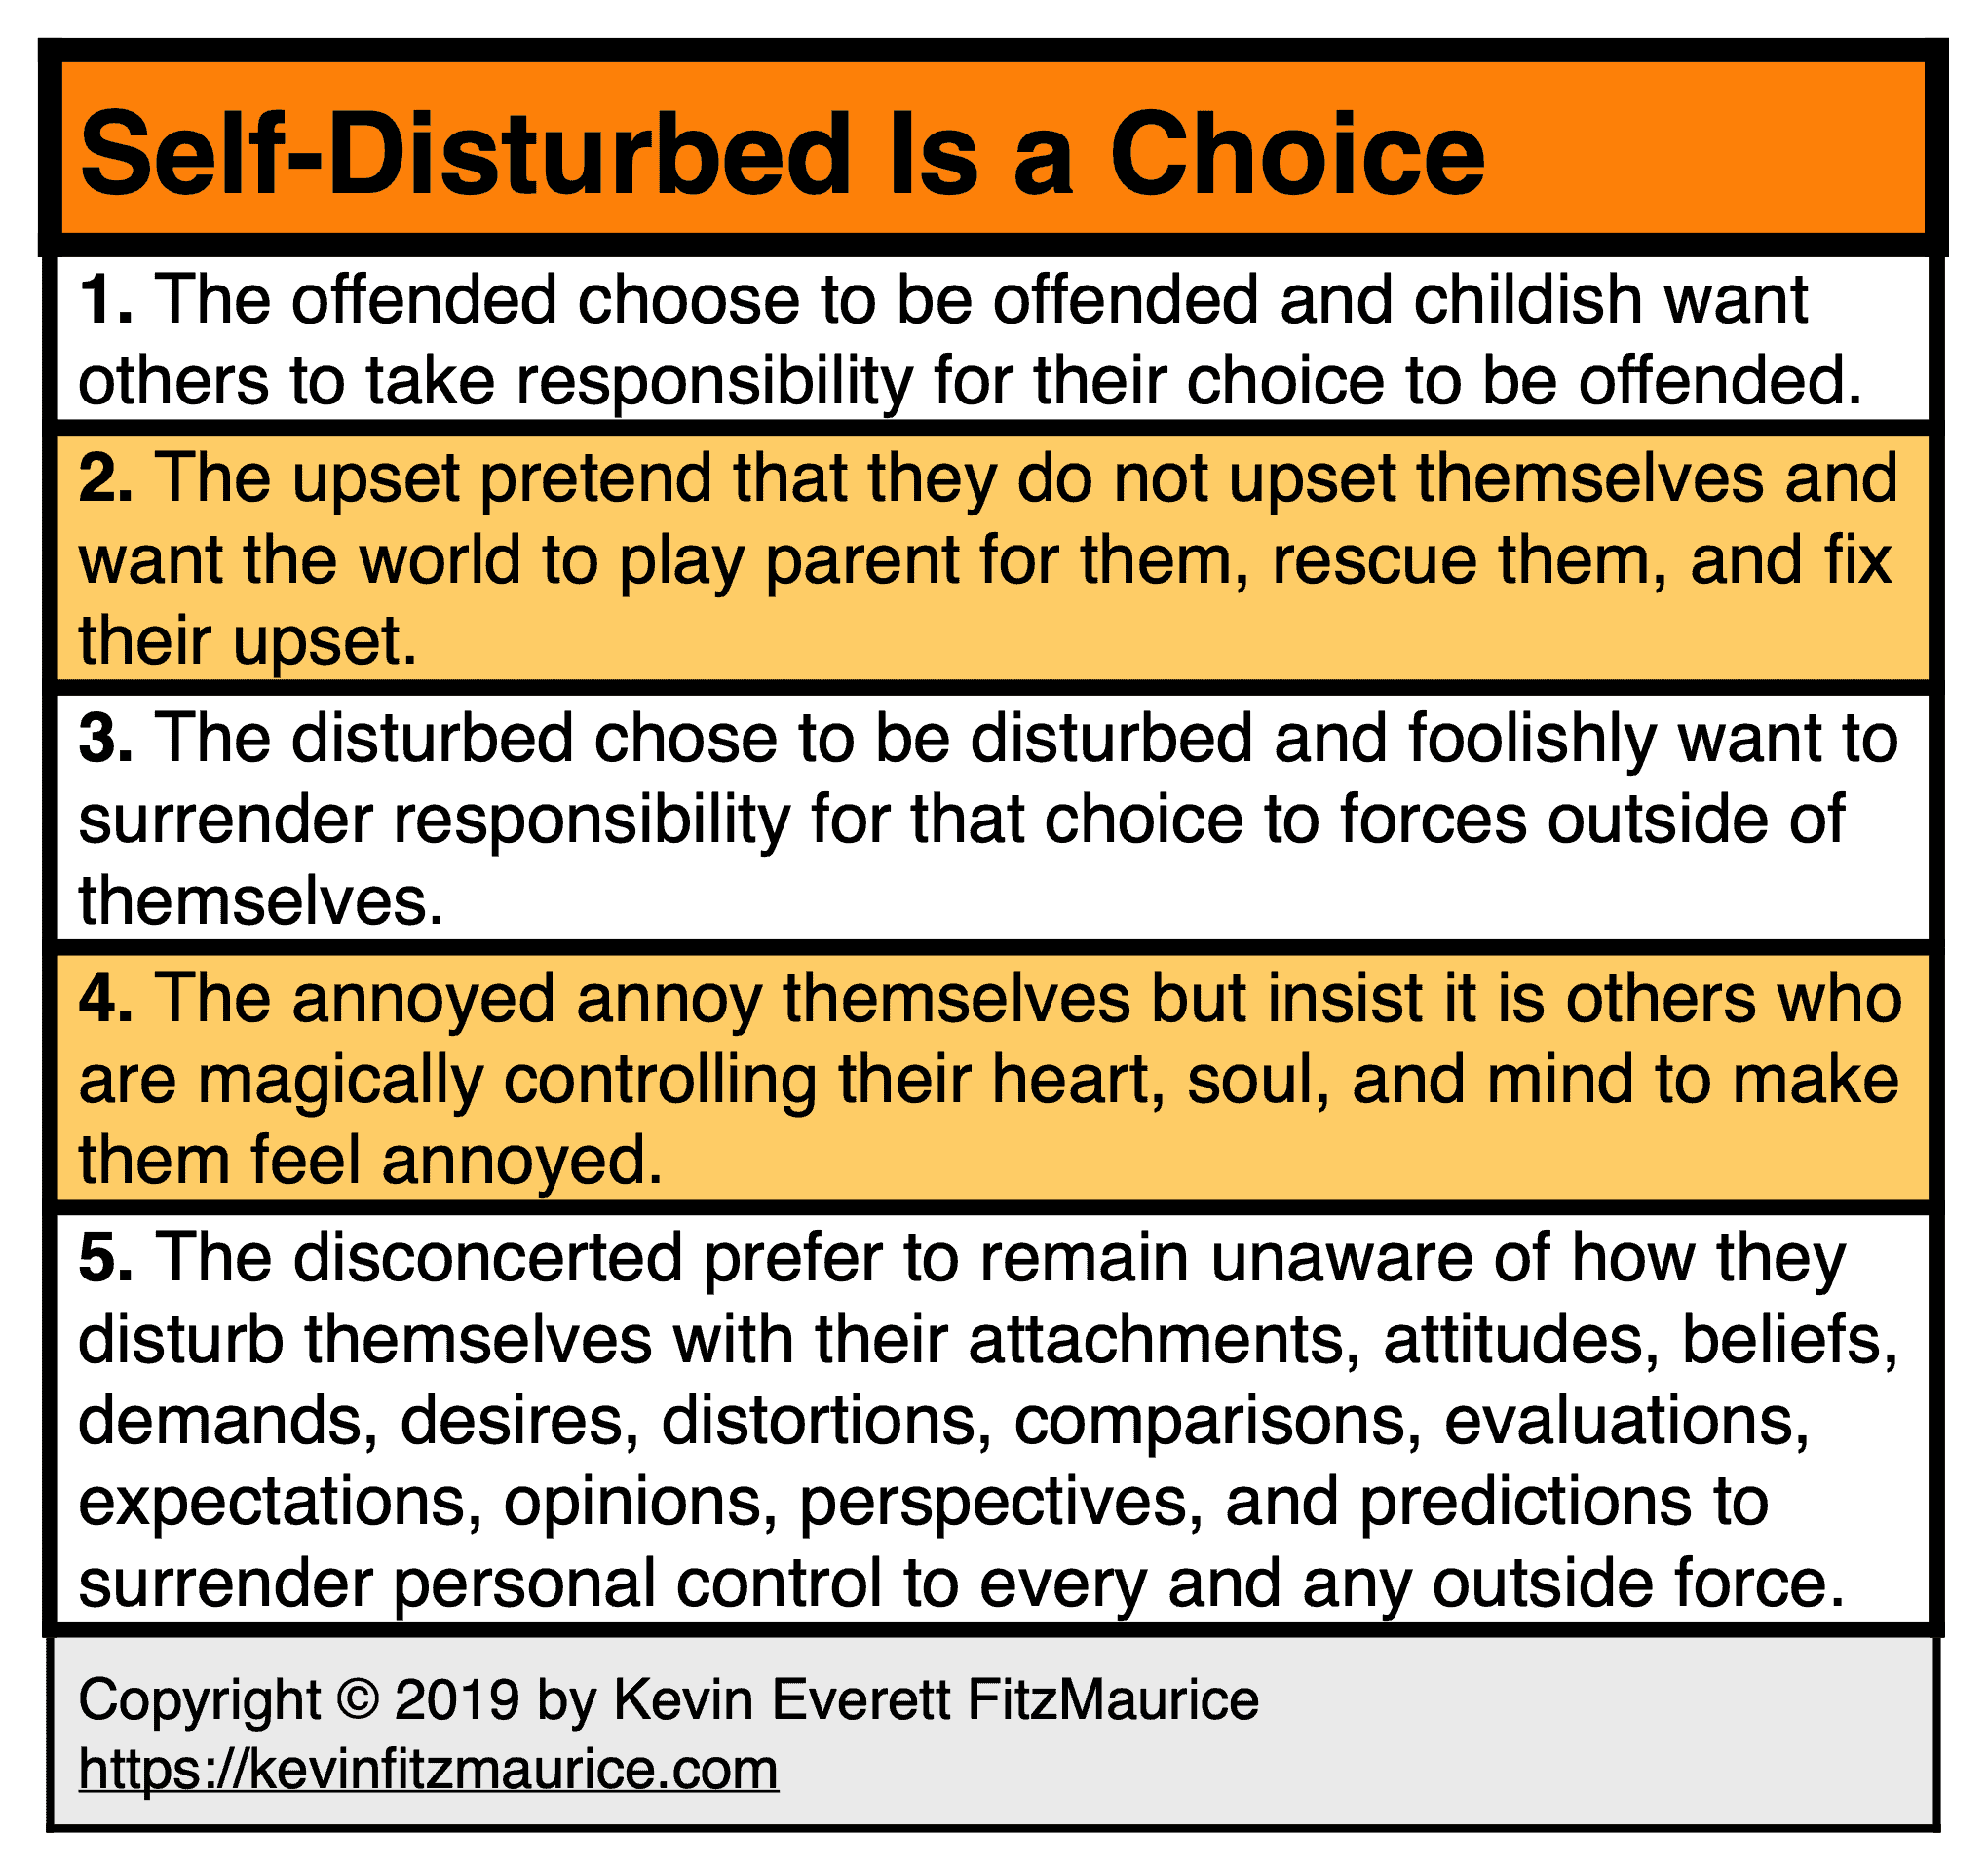 We choose to self-disturb. Learn not to do this.